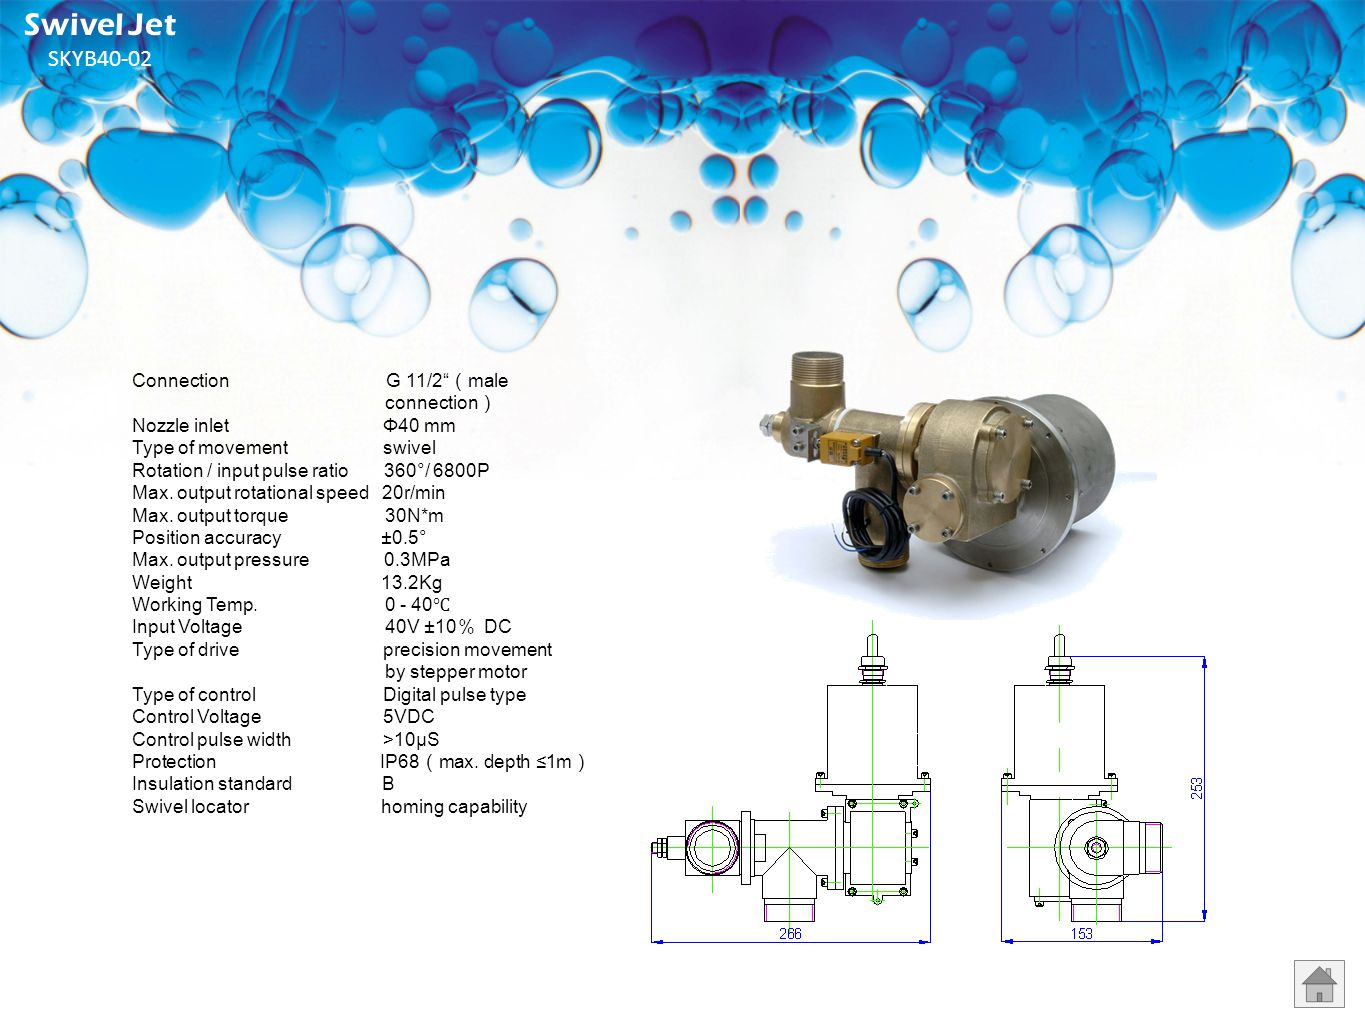 Swivel Jet SKYB40-02 Connection G 11/2 (male connection)